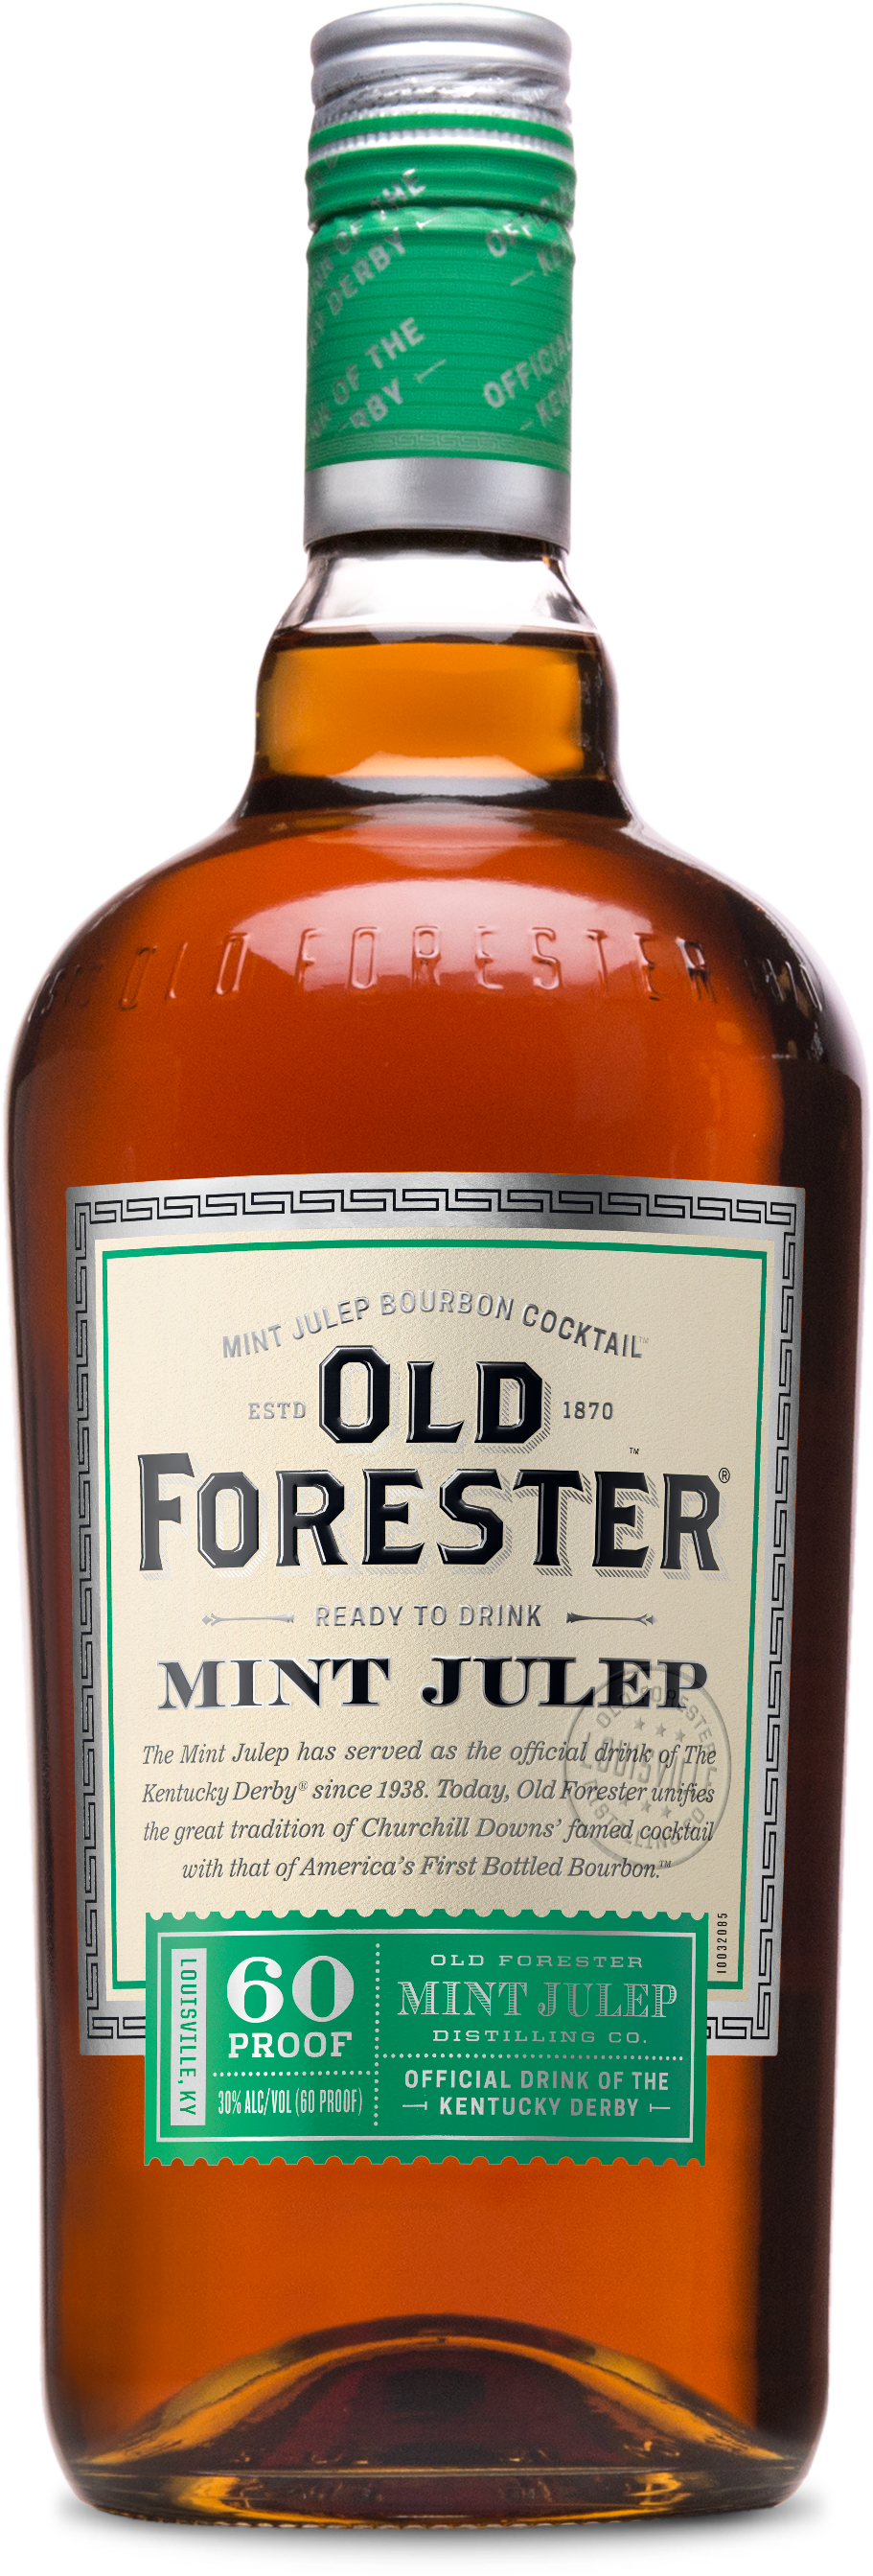 Mint Julep Old Forester